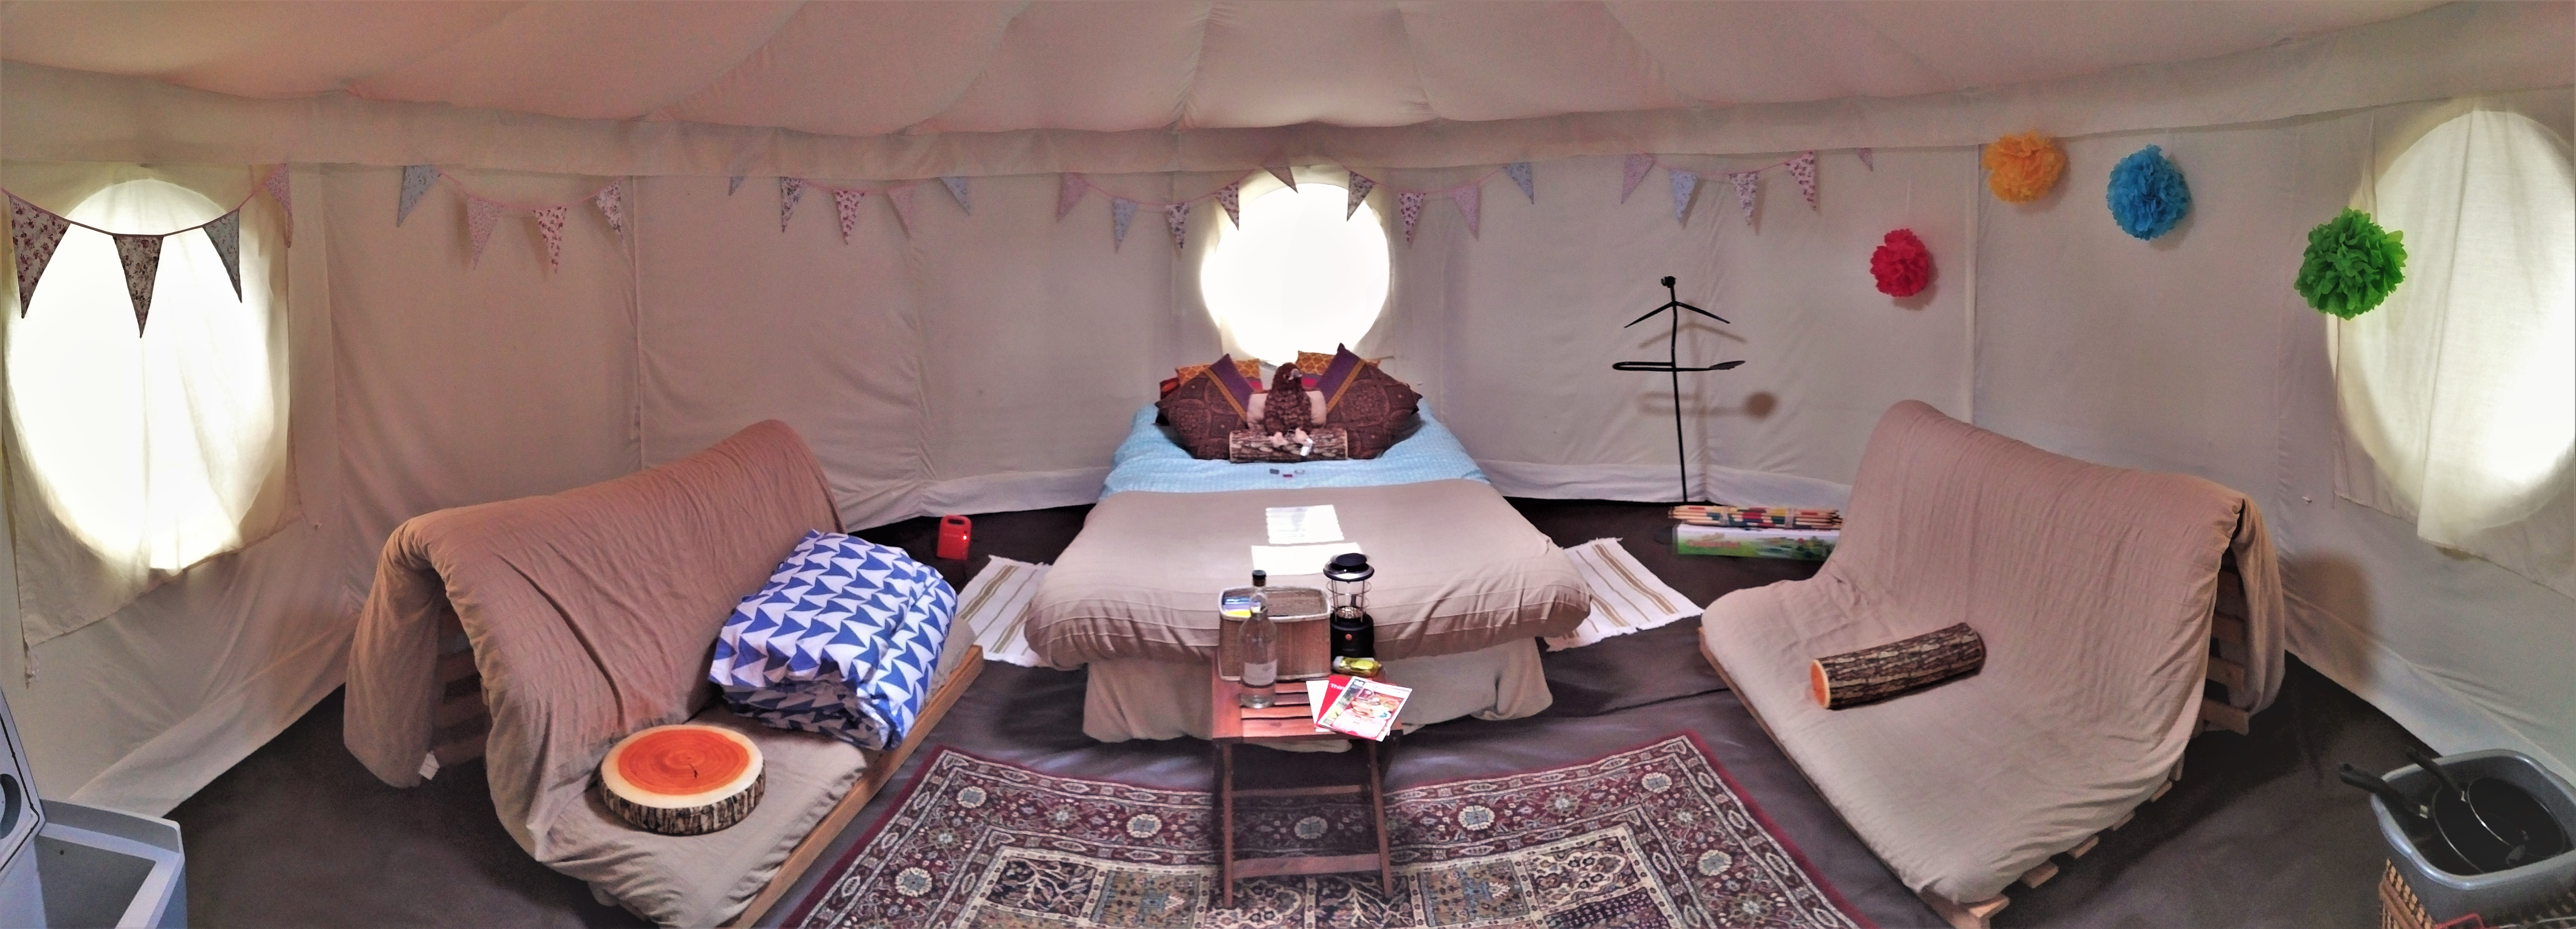 Inside our off-grid glamping Yurts in Somerset at Woodland Escape